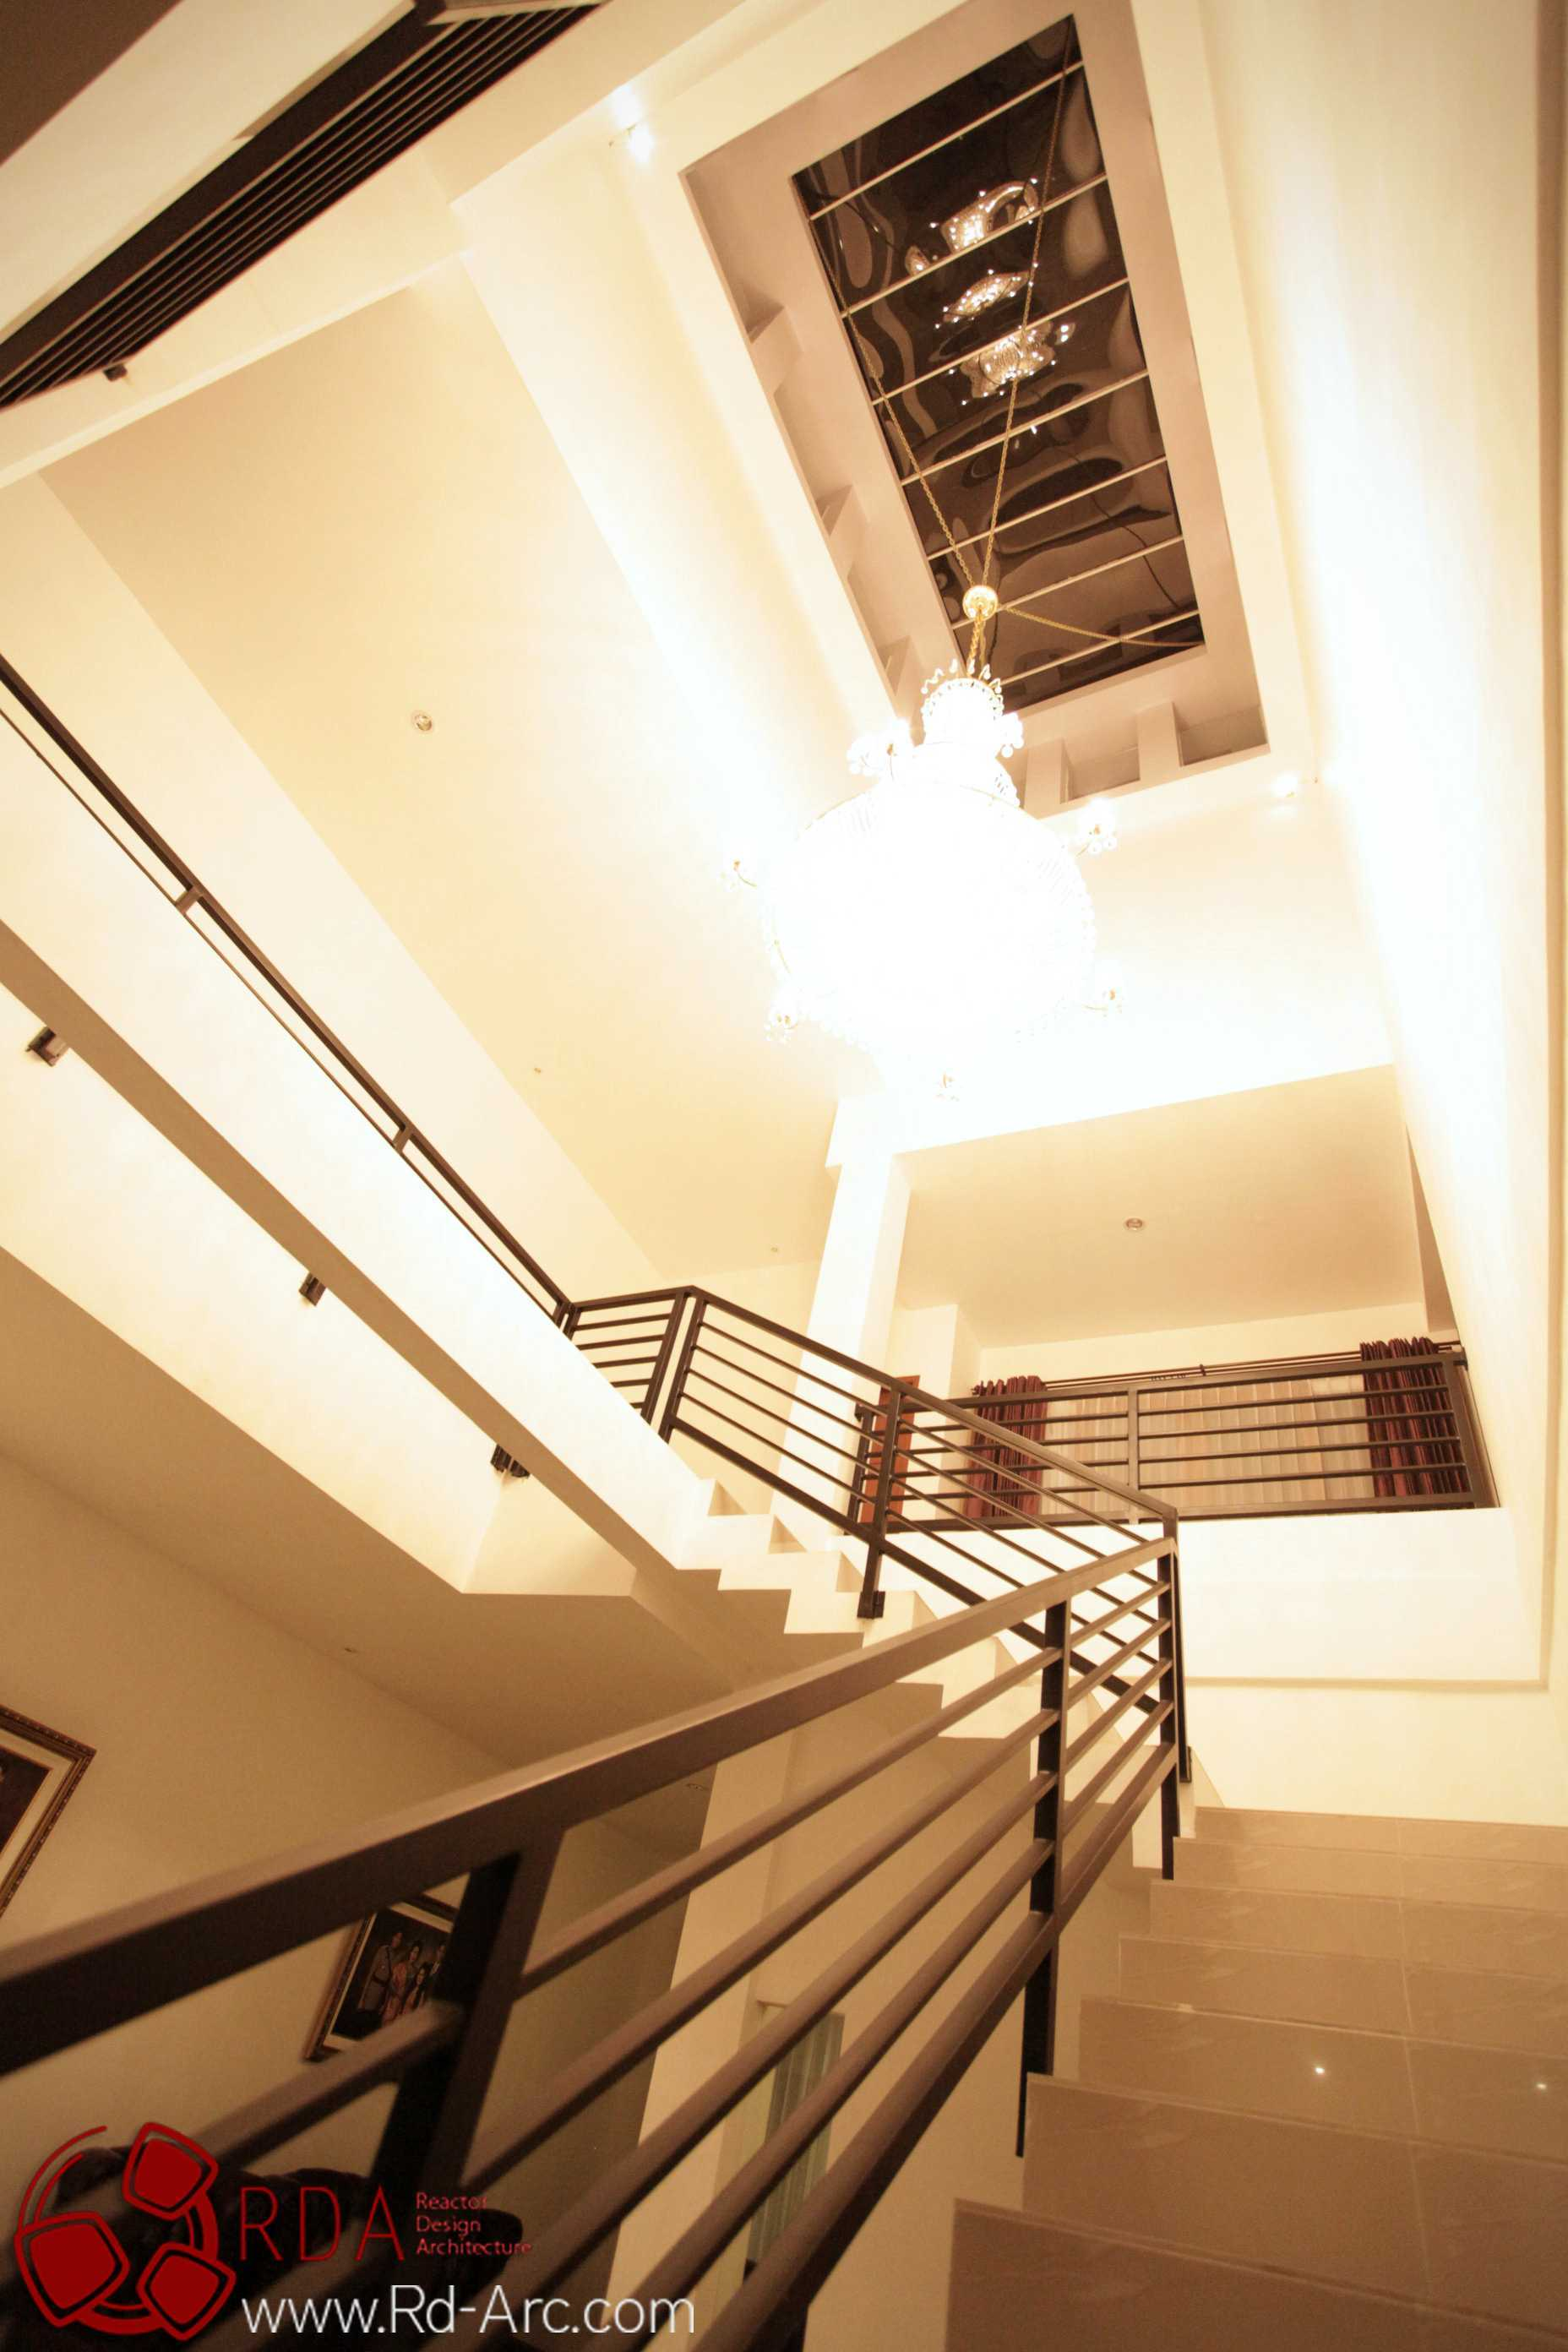 Farid  Rachmansyah Tropical Cube Grand City Regency Surabaya Grand City Regency Surabaya Stairs And Ceiling Tropis  16841